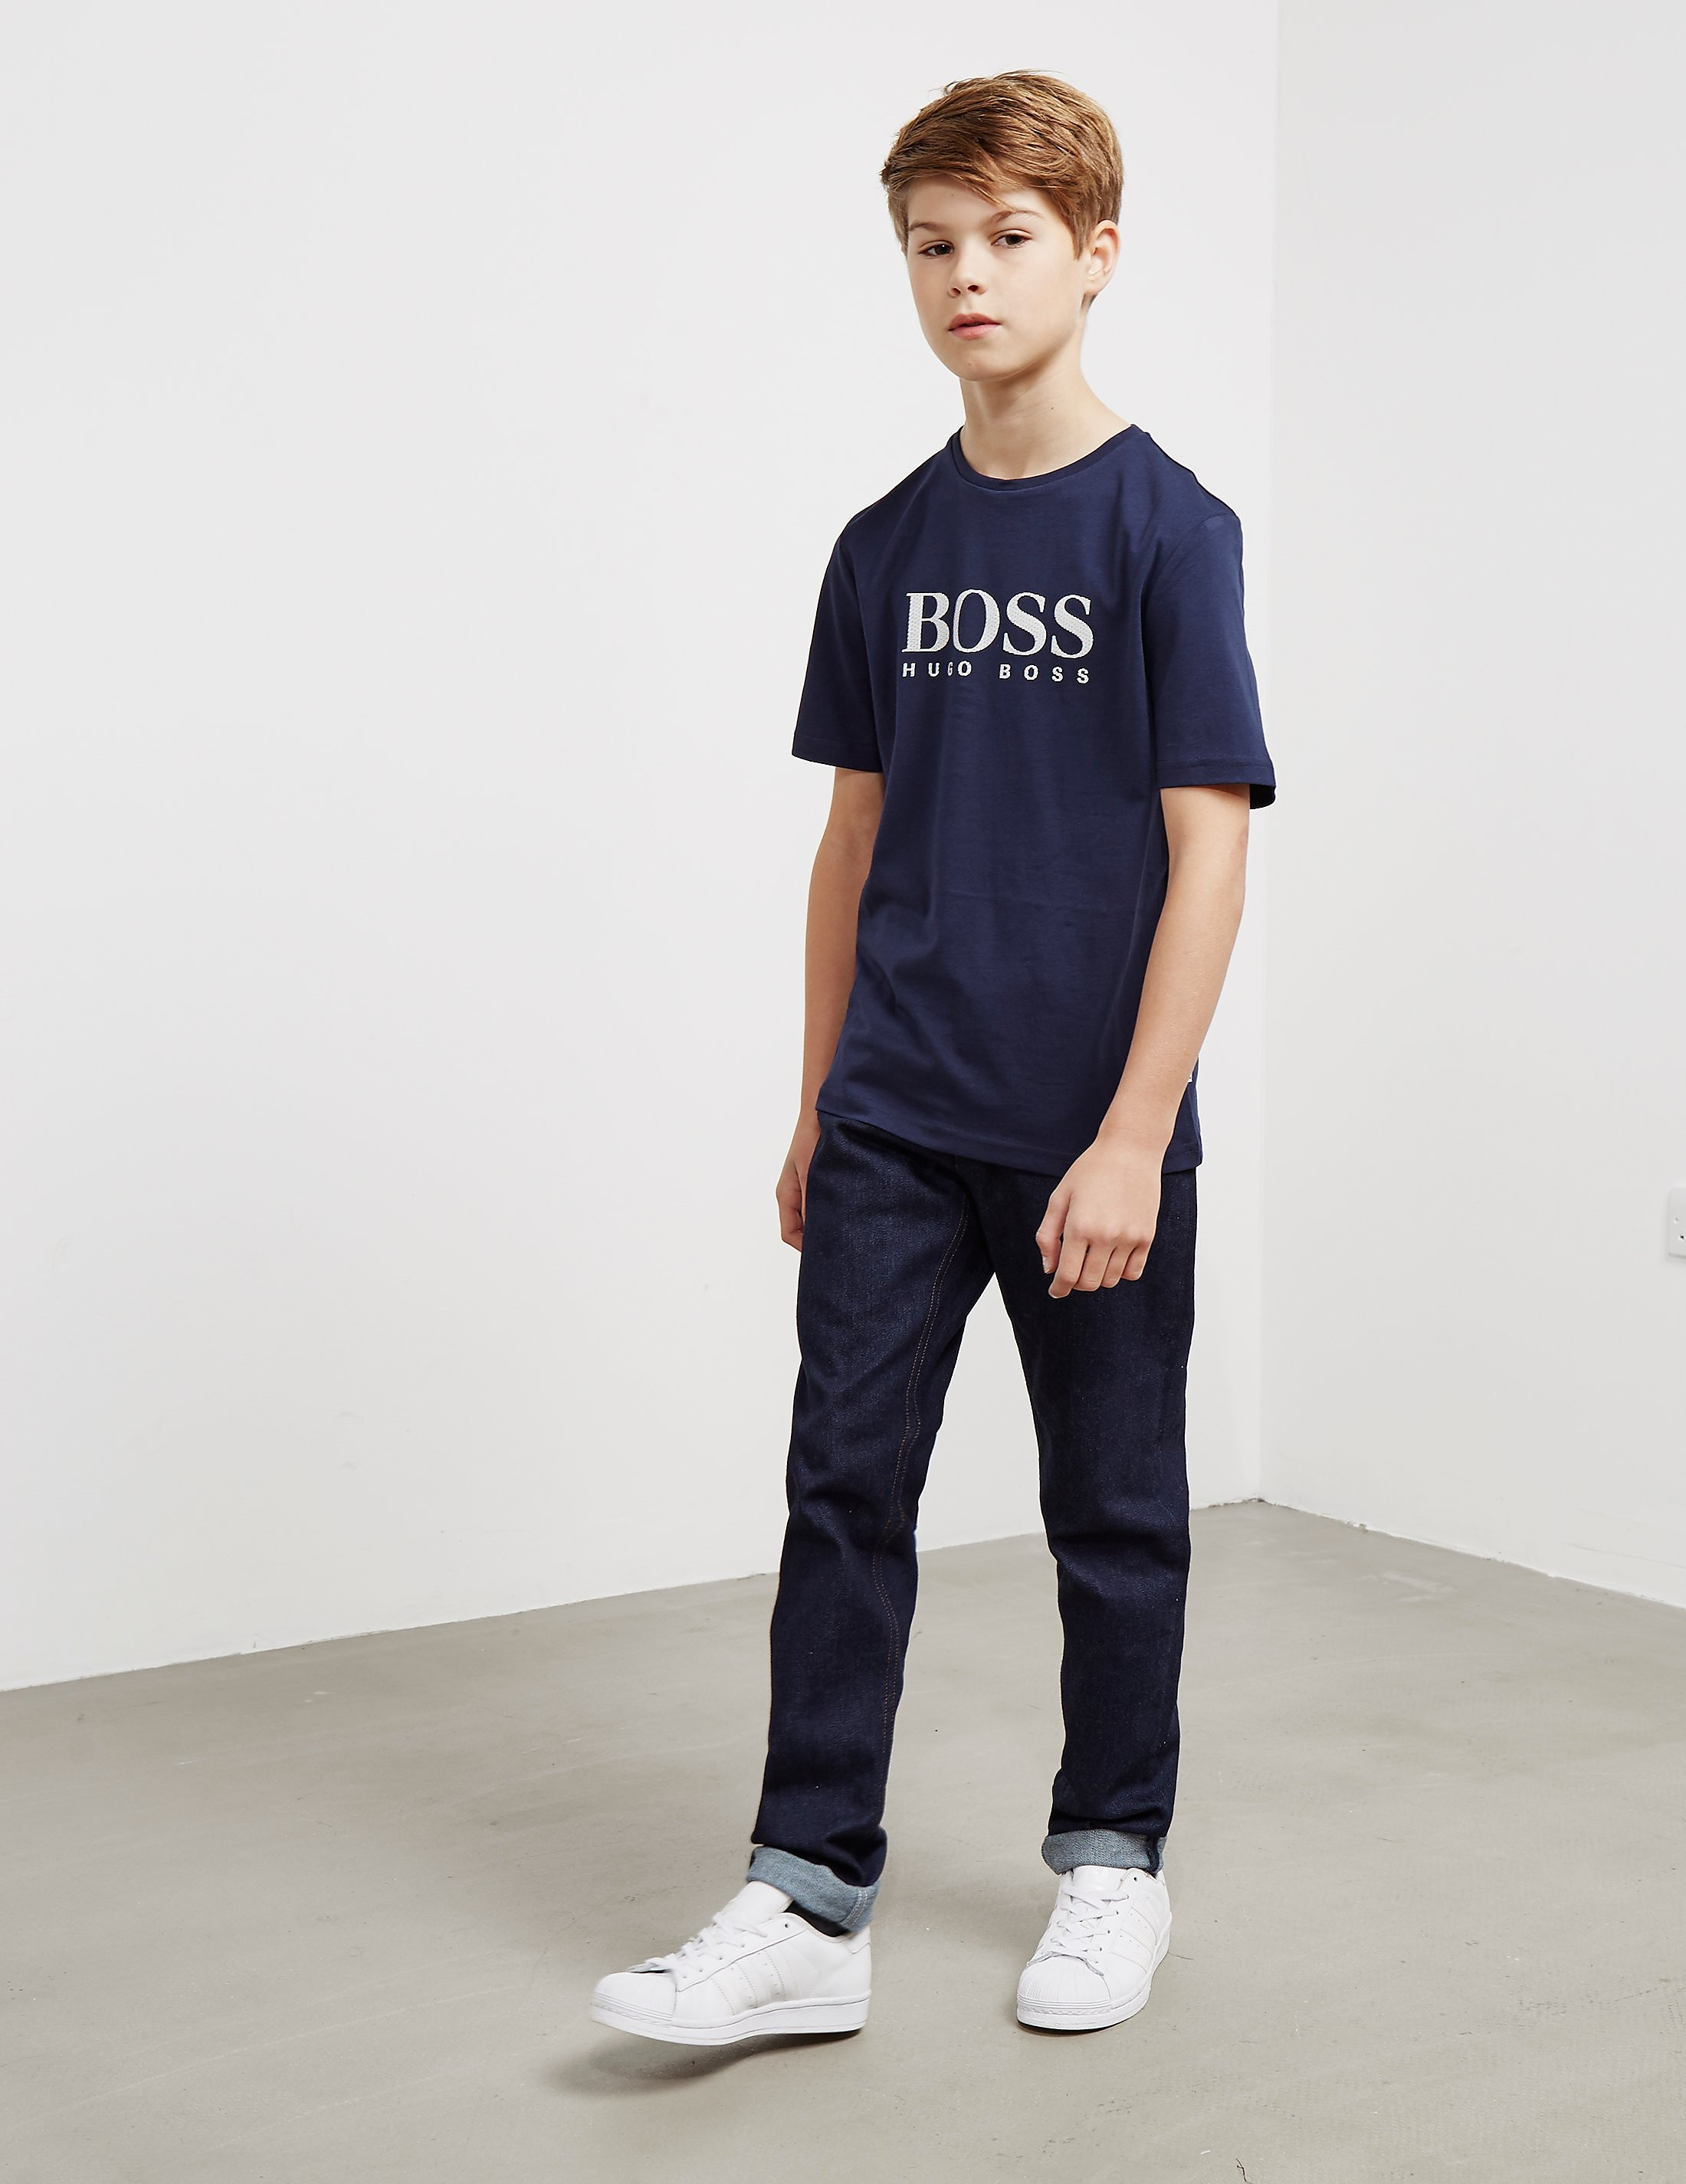 BOSS Large Logo Short Sleeve T-Shirt